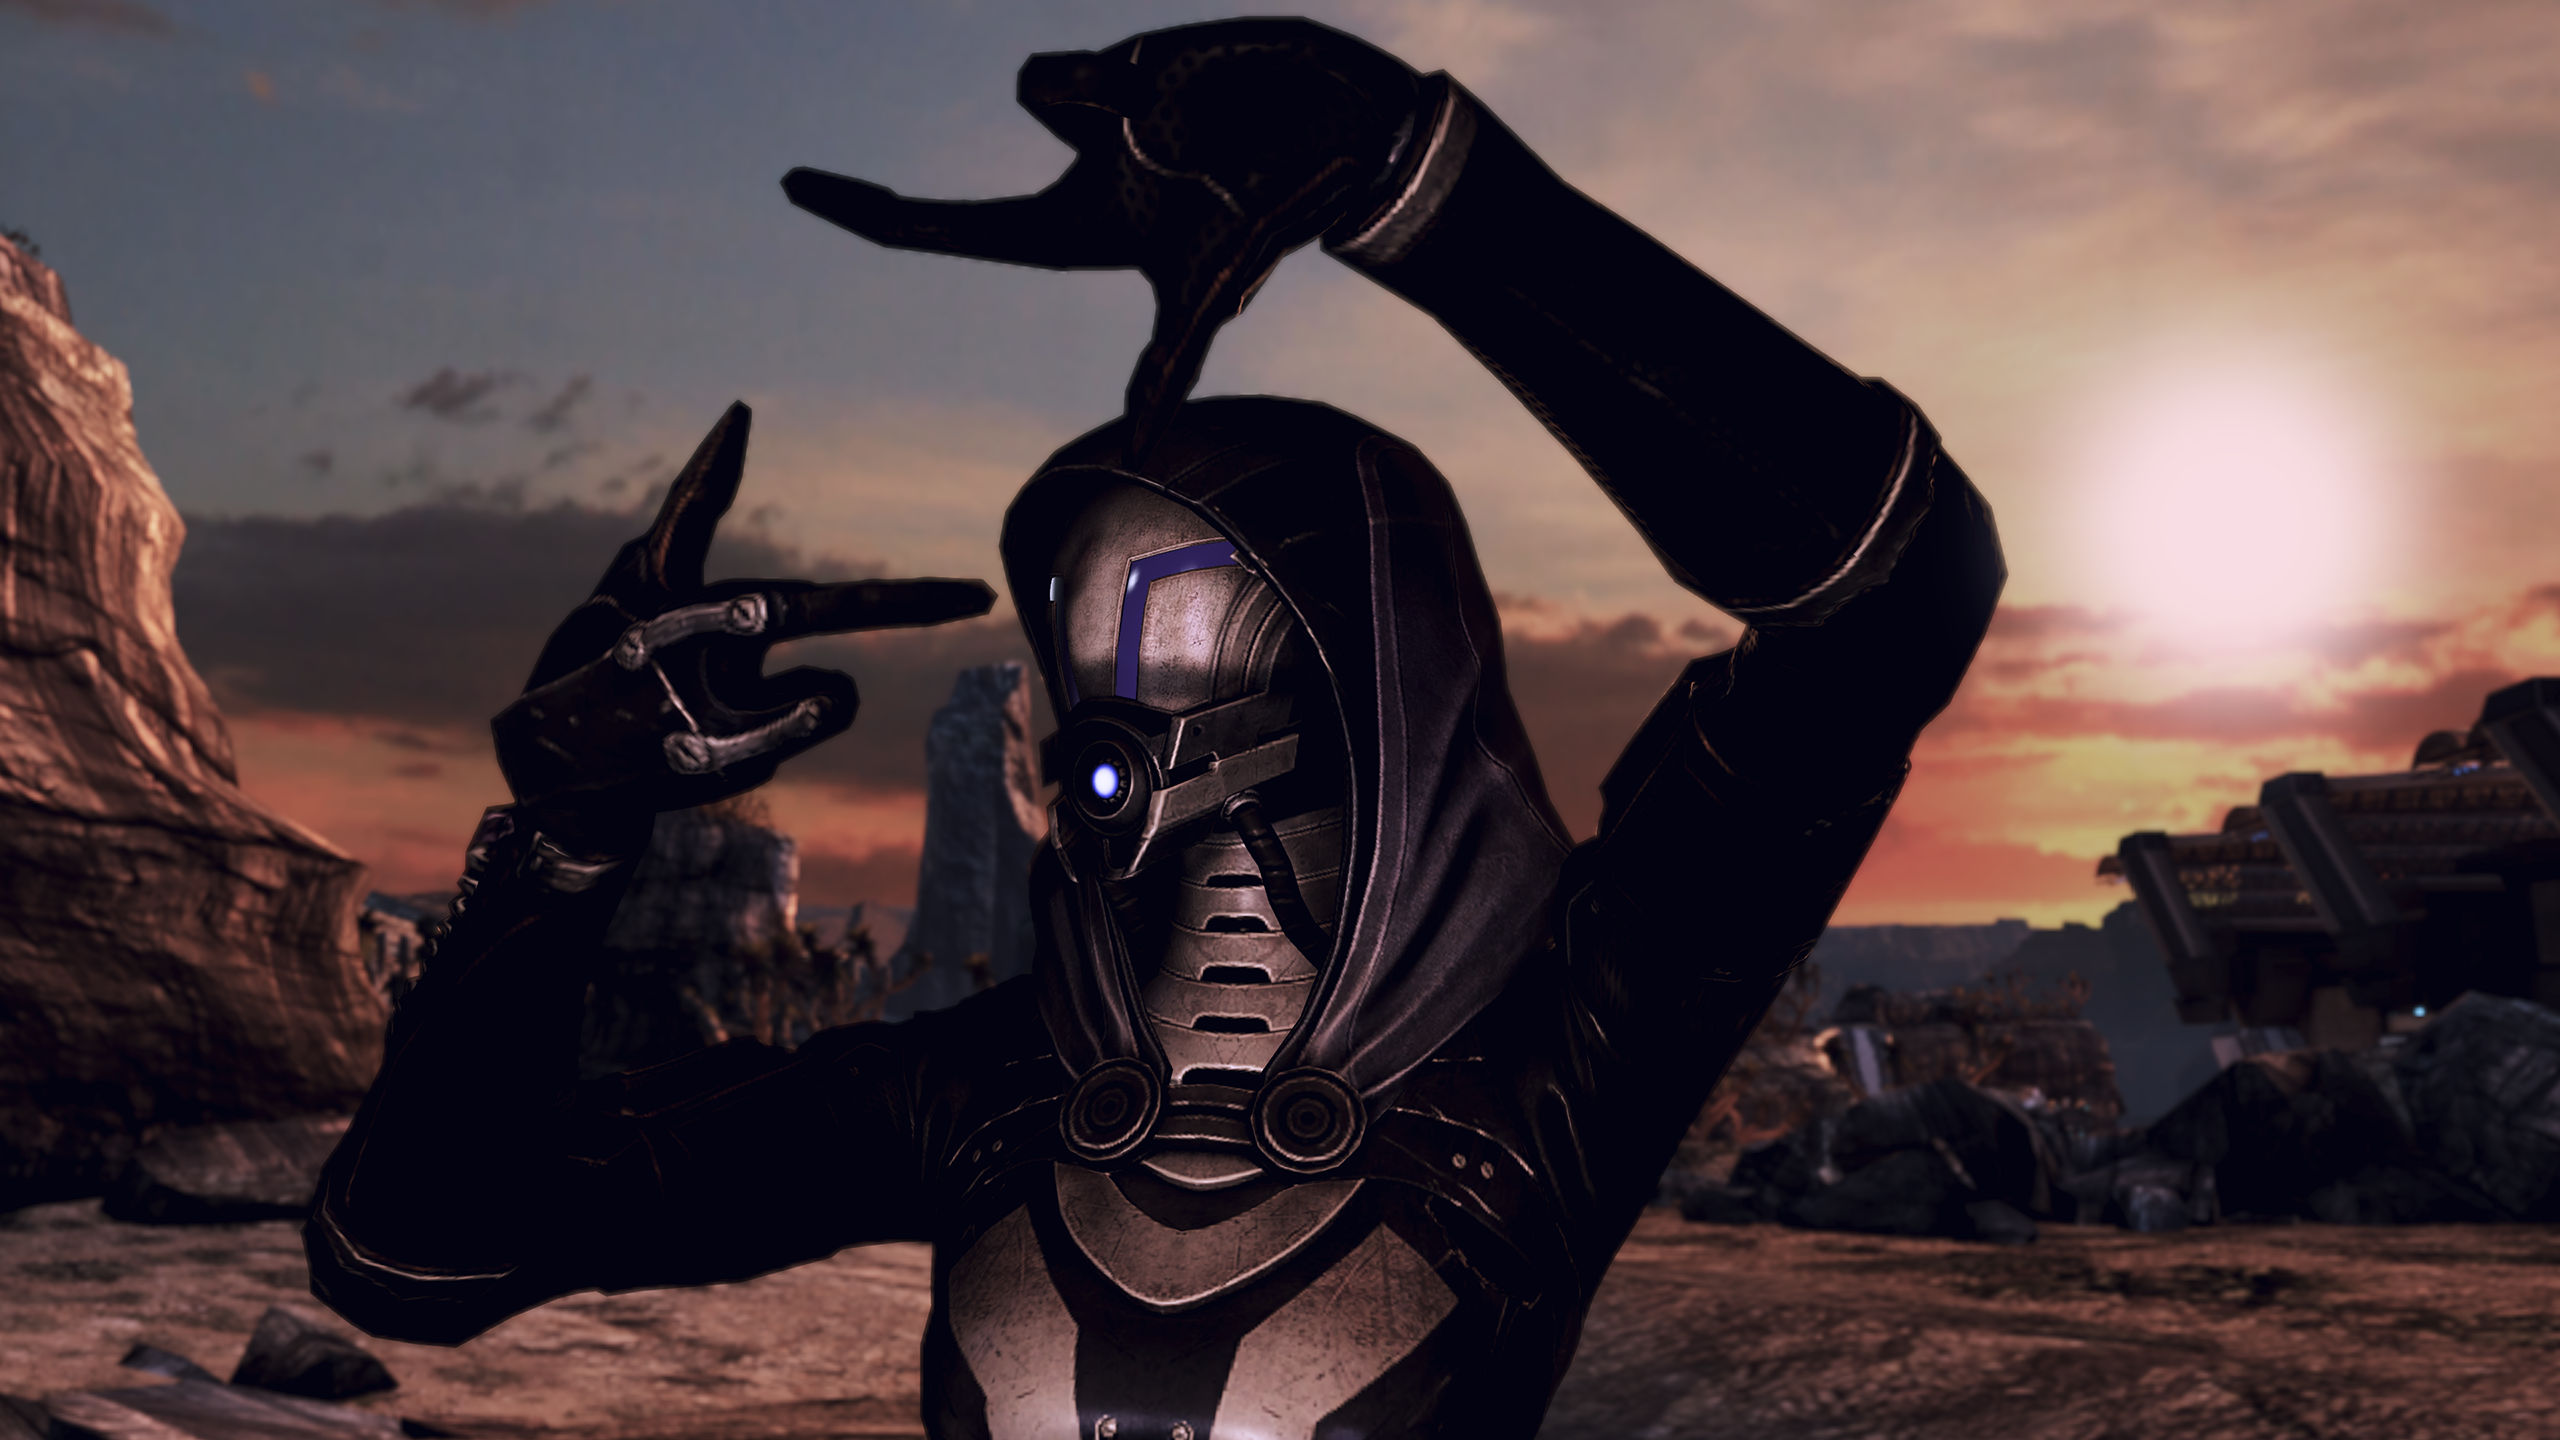 Hook up with tali mass effect 2